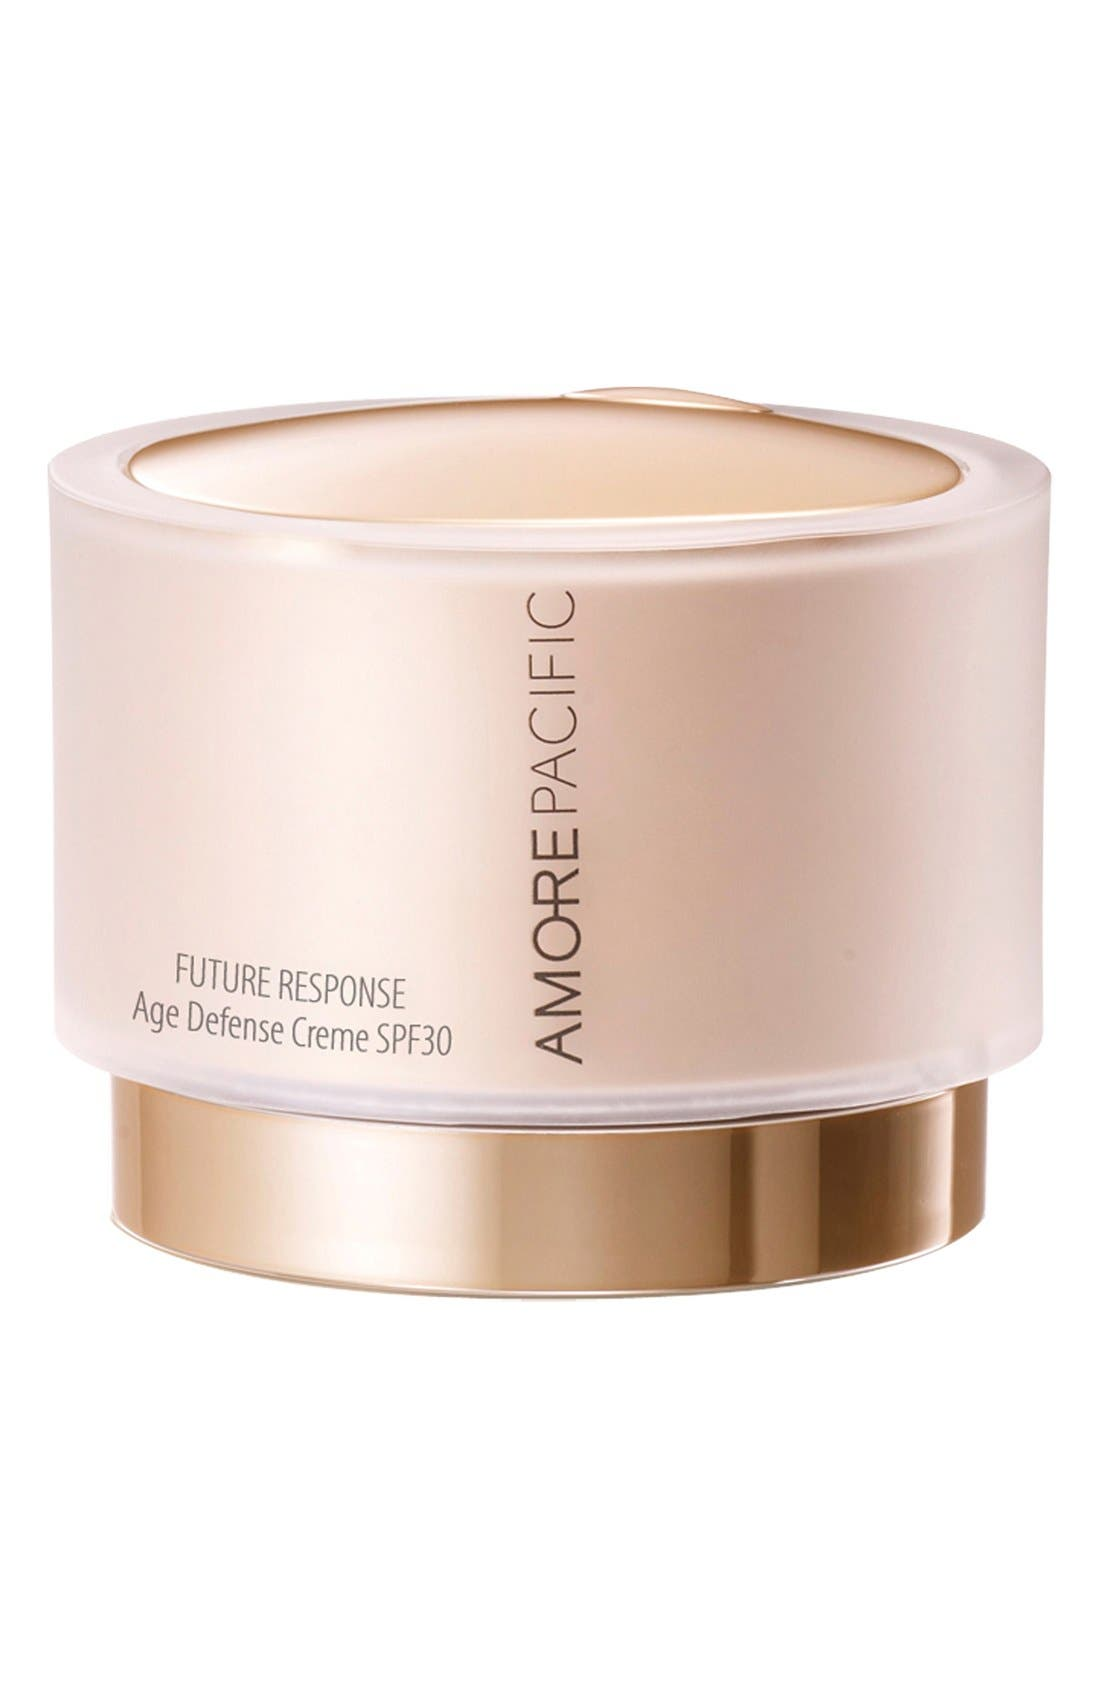 AMOREPACIFIC 'Future Response' Age Defense Creme SPF 30